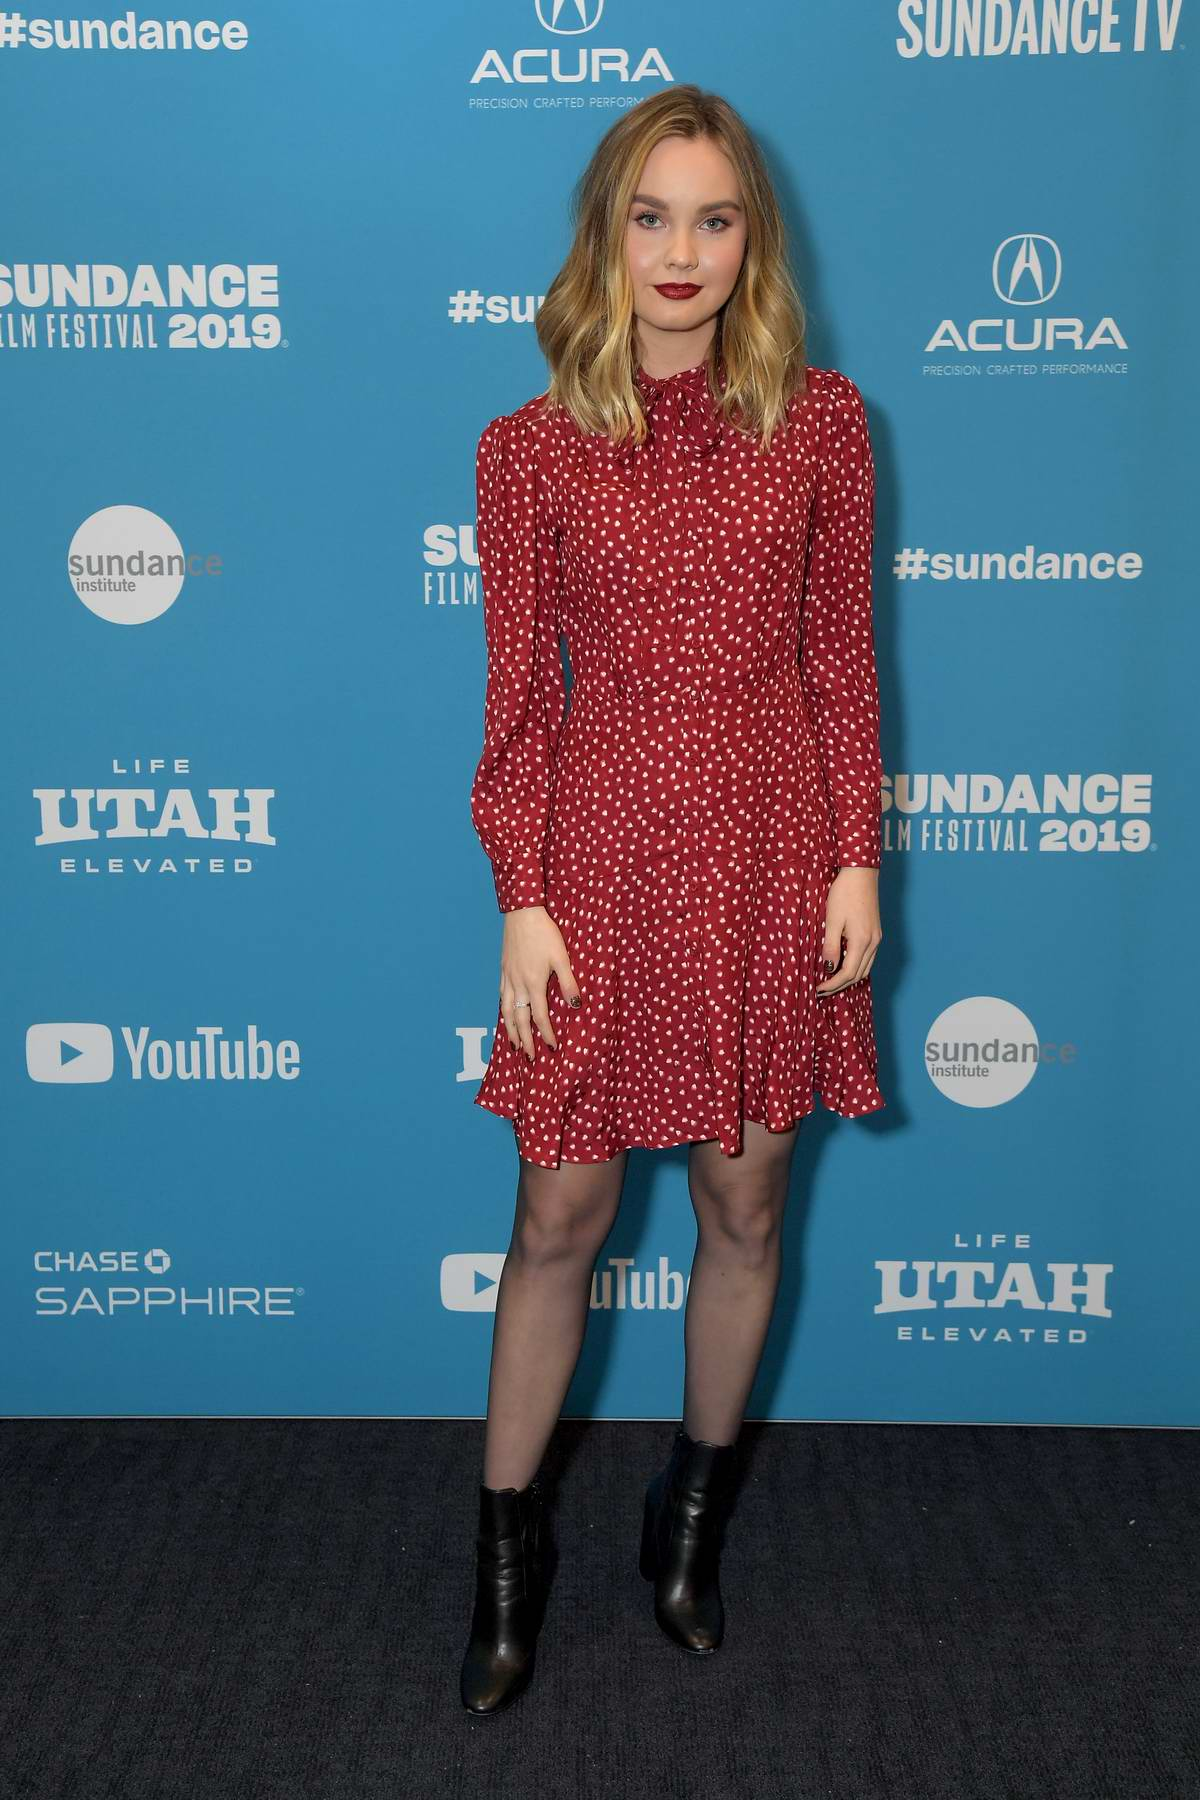 Liana Liberato attends 'To The Stars' Premiere during Sundance Film Festival in Park City, Utah